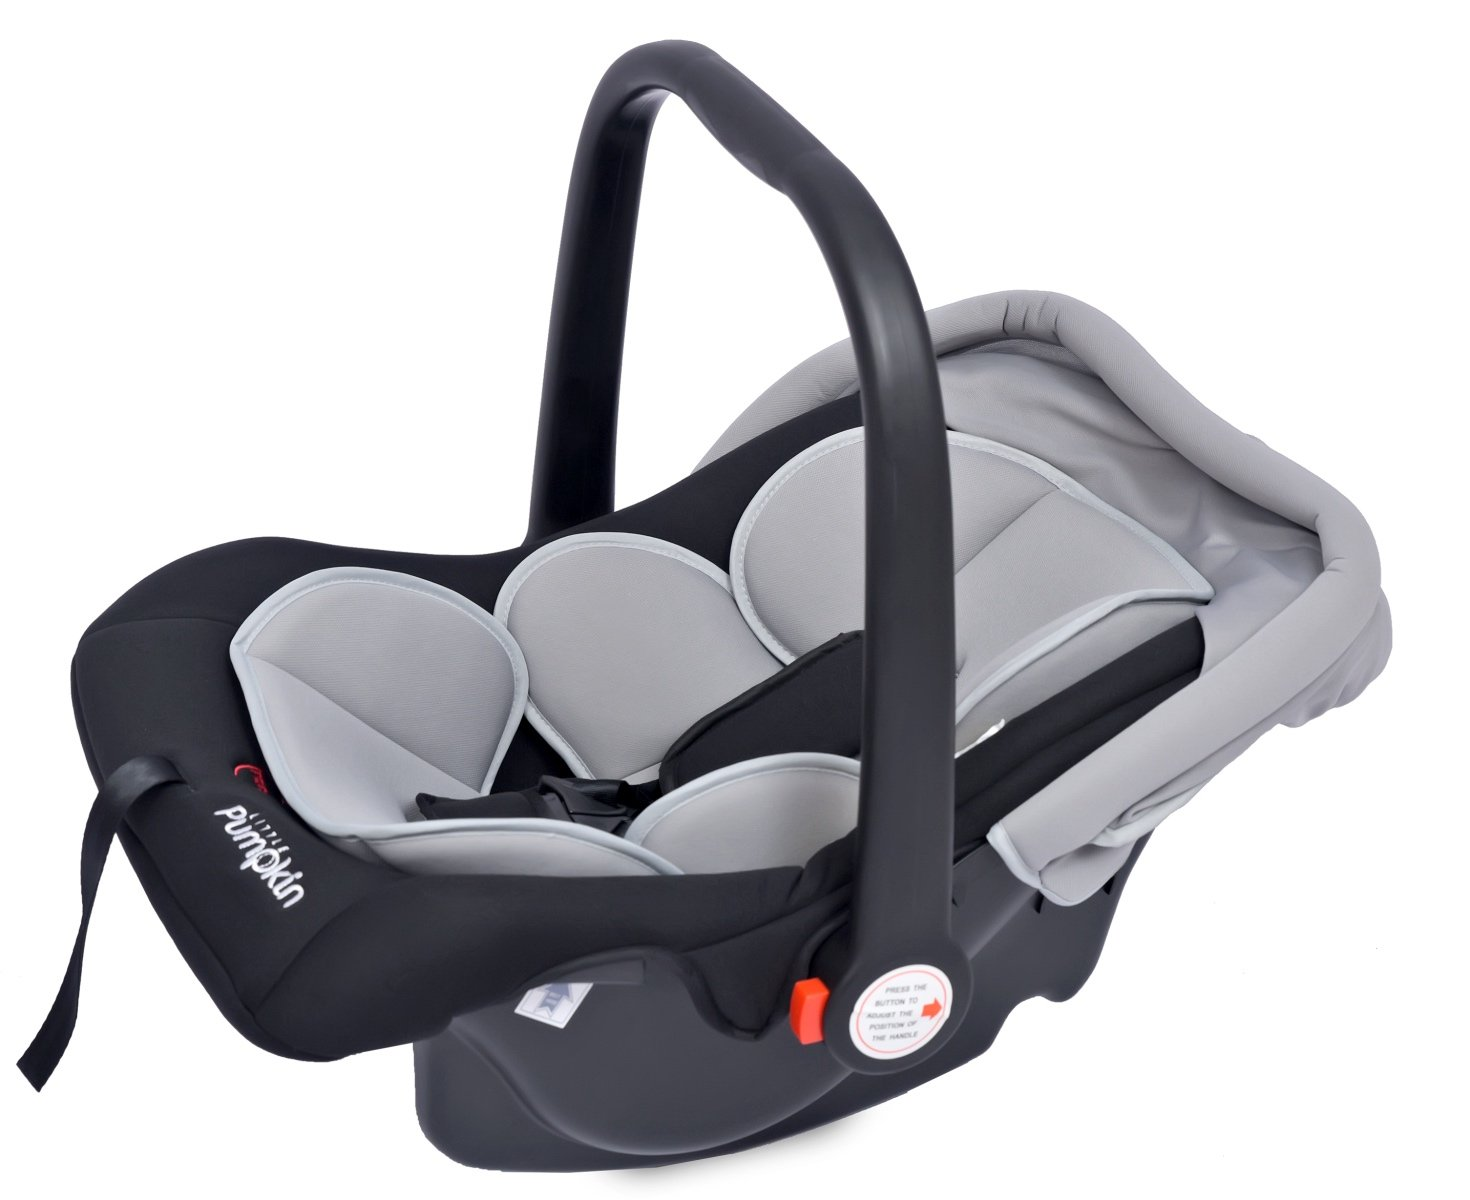 Car Seat Buy Baby Online At Best Prices In India